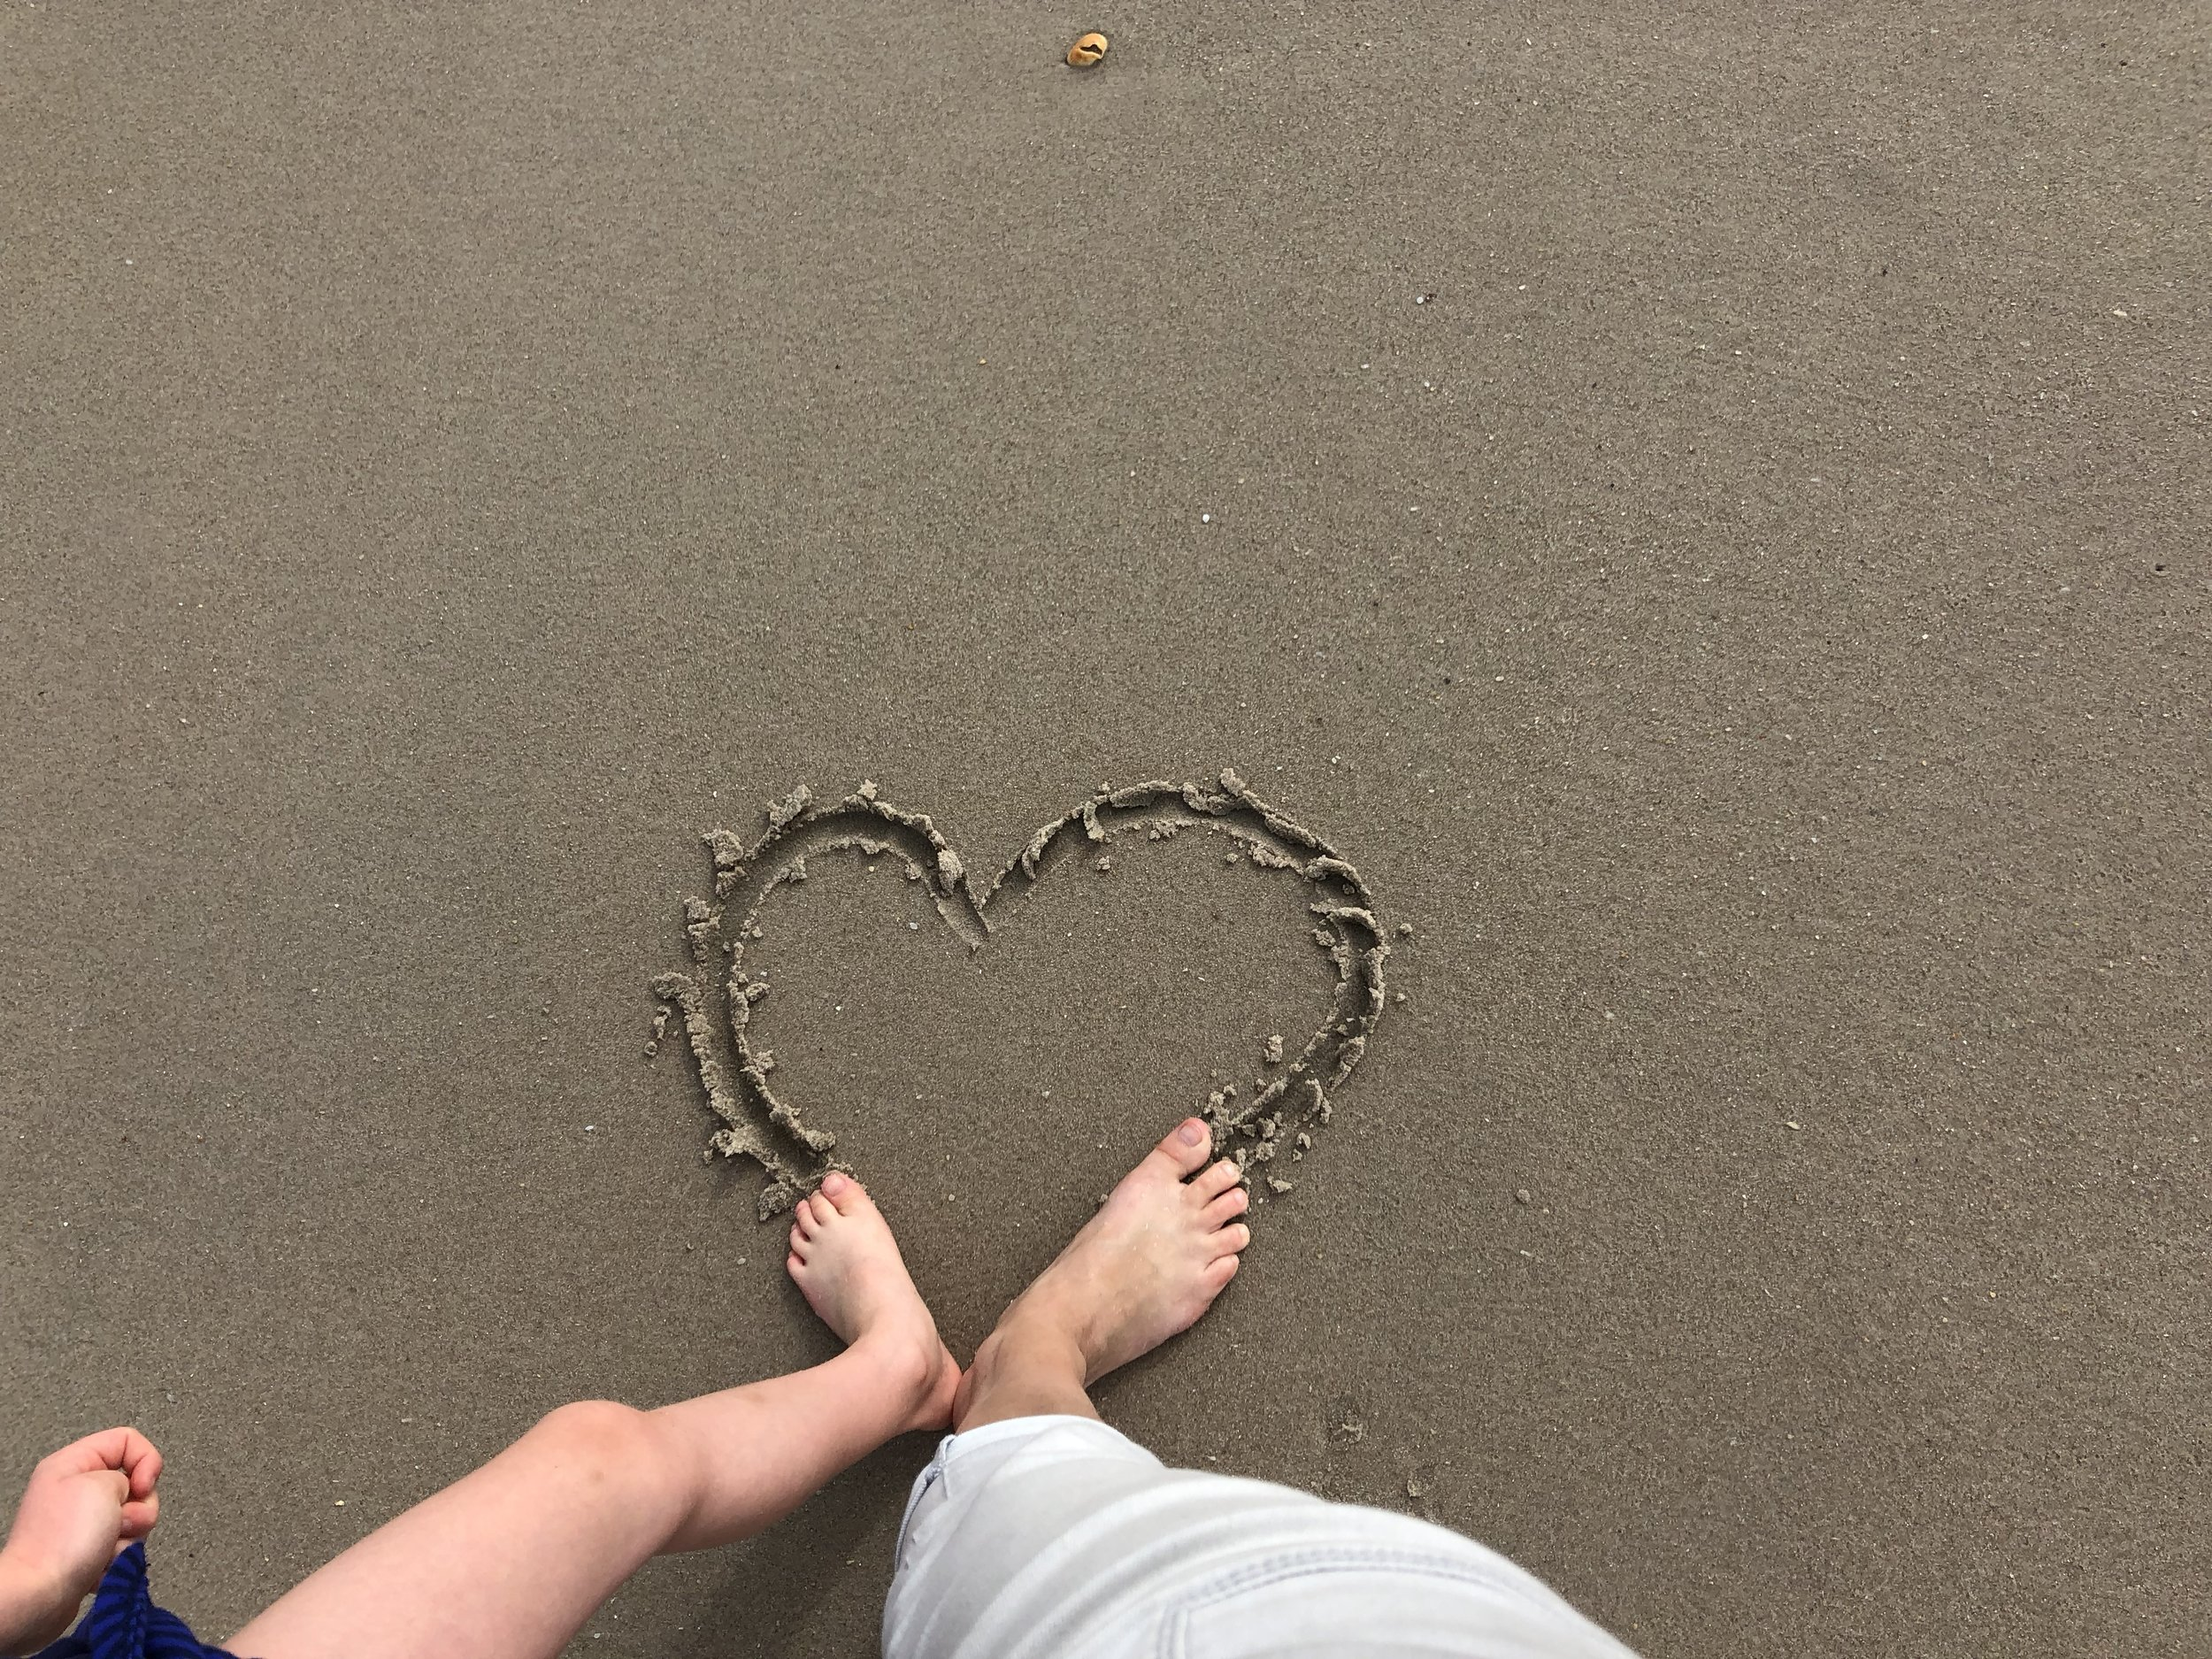 Juni-Mom heart in sand.jpg